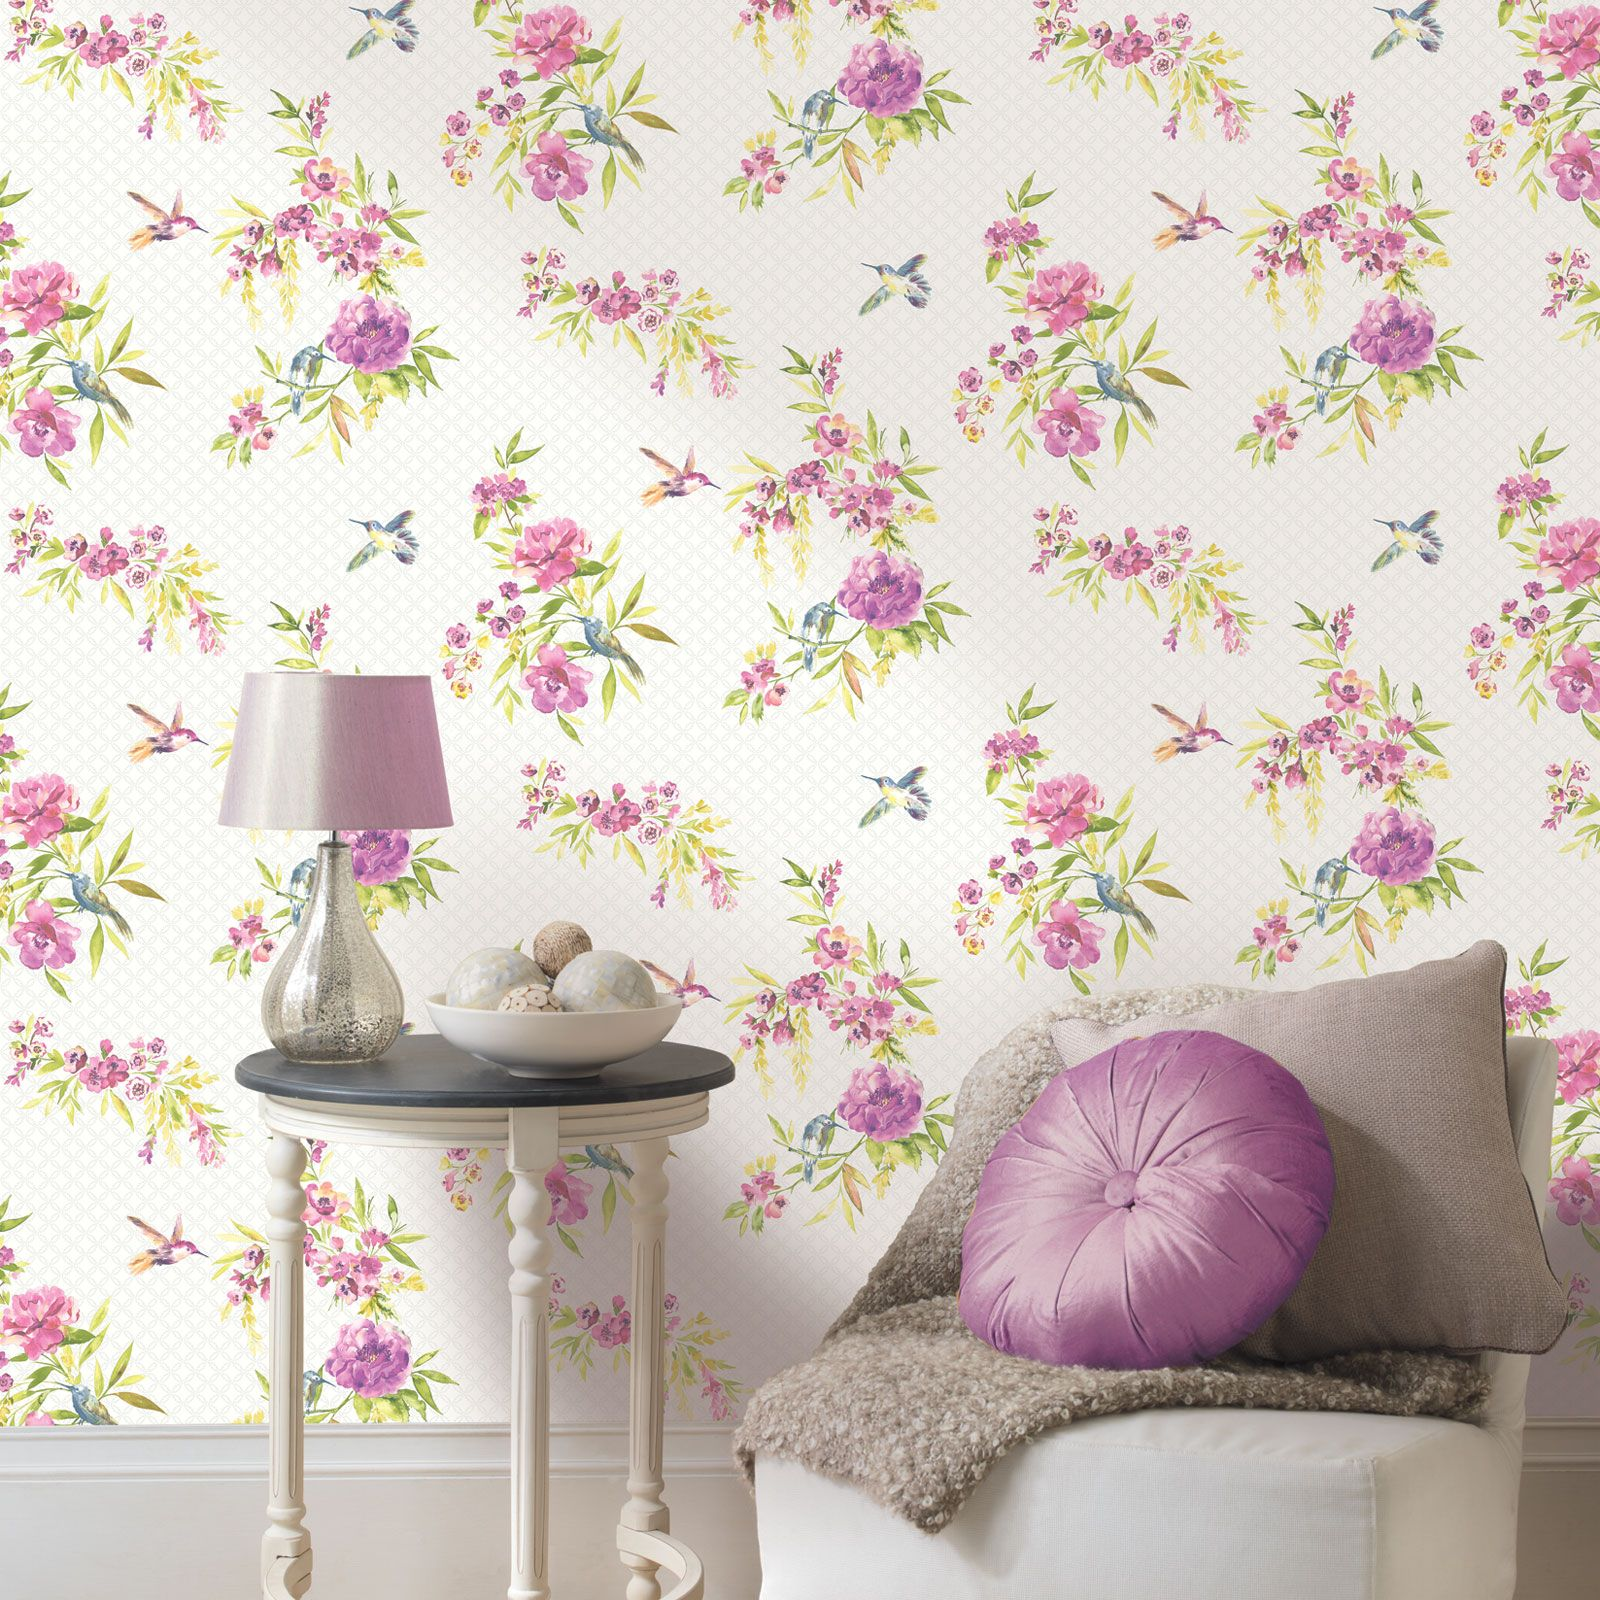 Shabby chic floral wallpaper in various designs wall decor for Shabby chic wall art